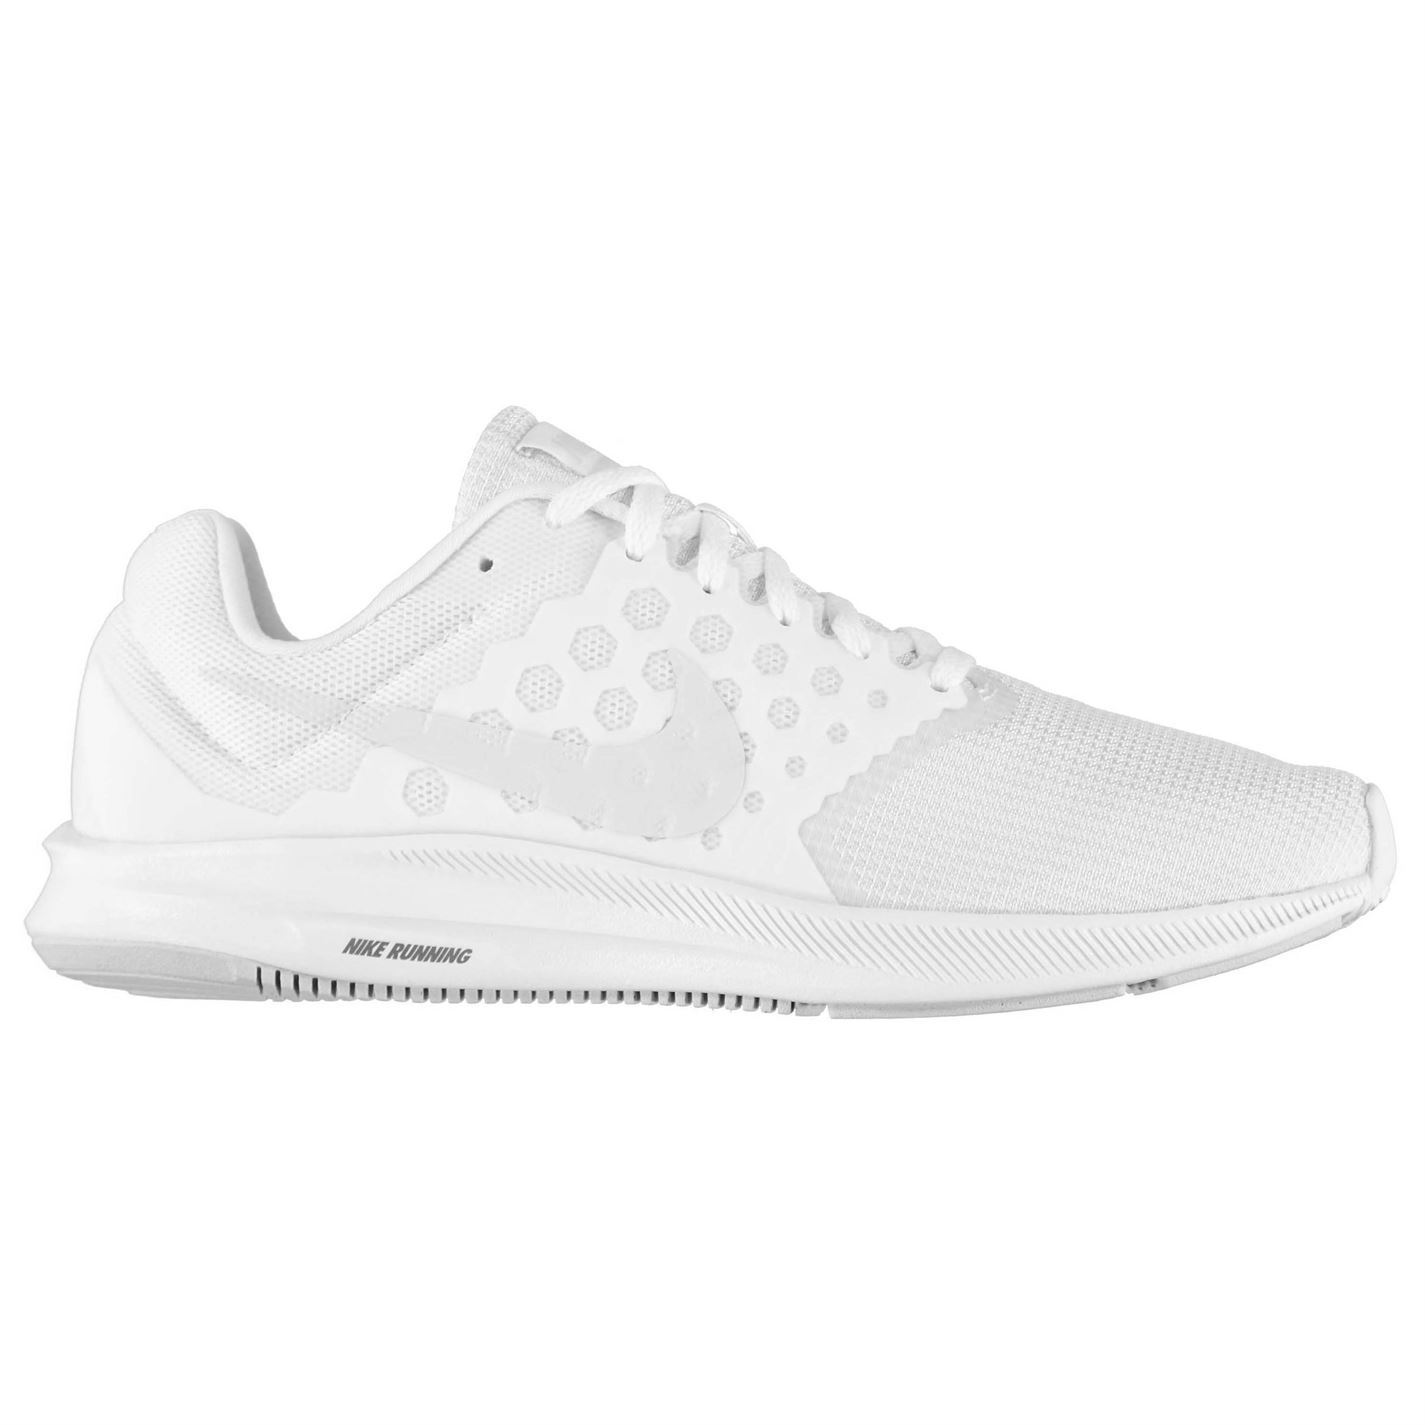 1f08c22cdb83 ... Nike Downshifter 7 Trainers Mens White Platinum Athletic Sneakers Shoes  ...